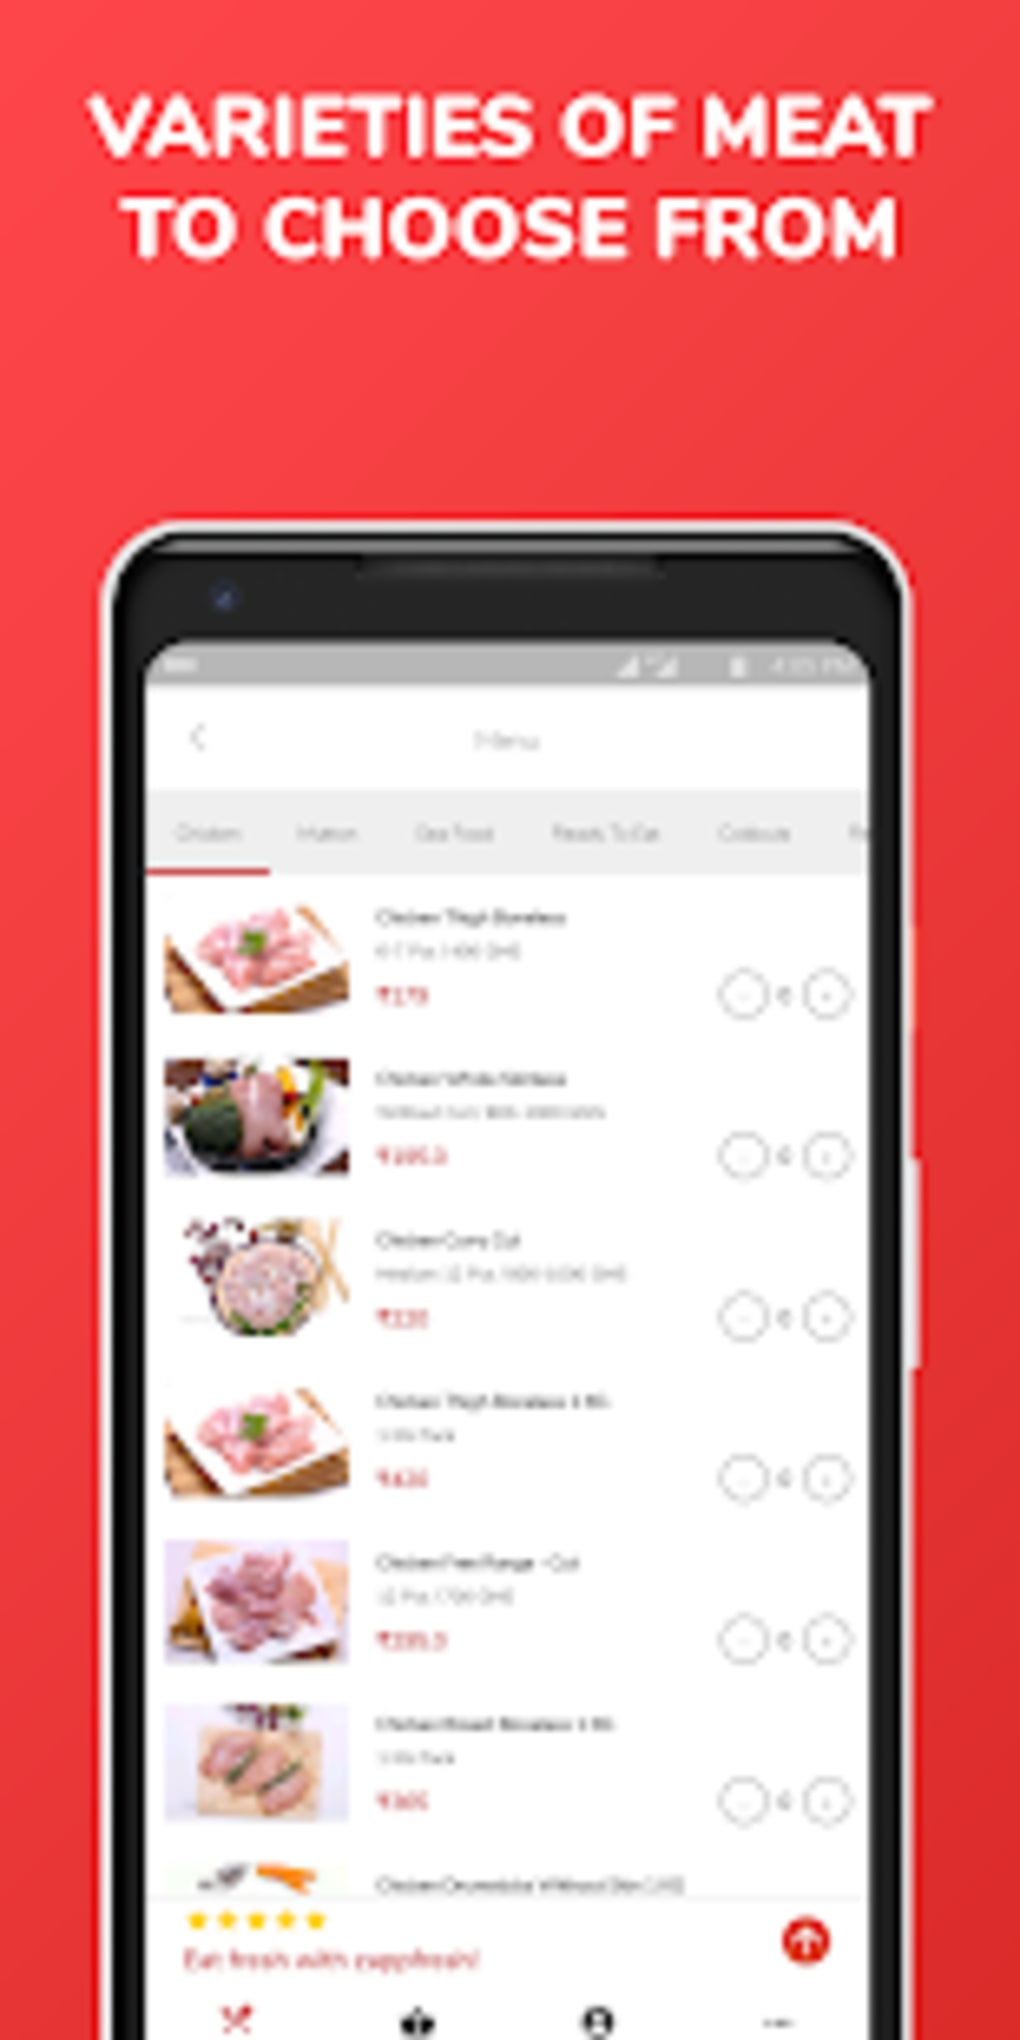 Raw Chicken Mutton SeaFood Meat Ordering App for Android - Download